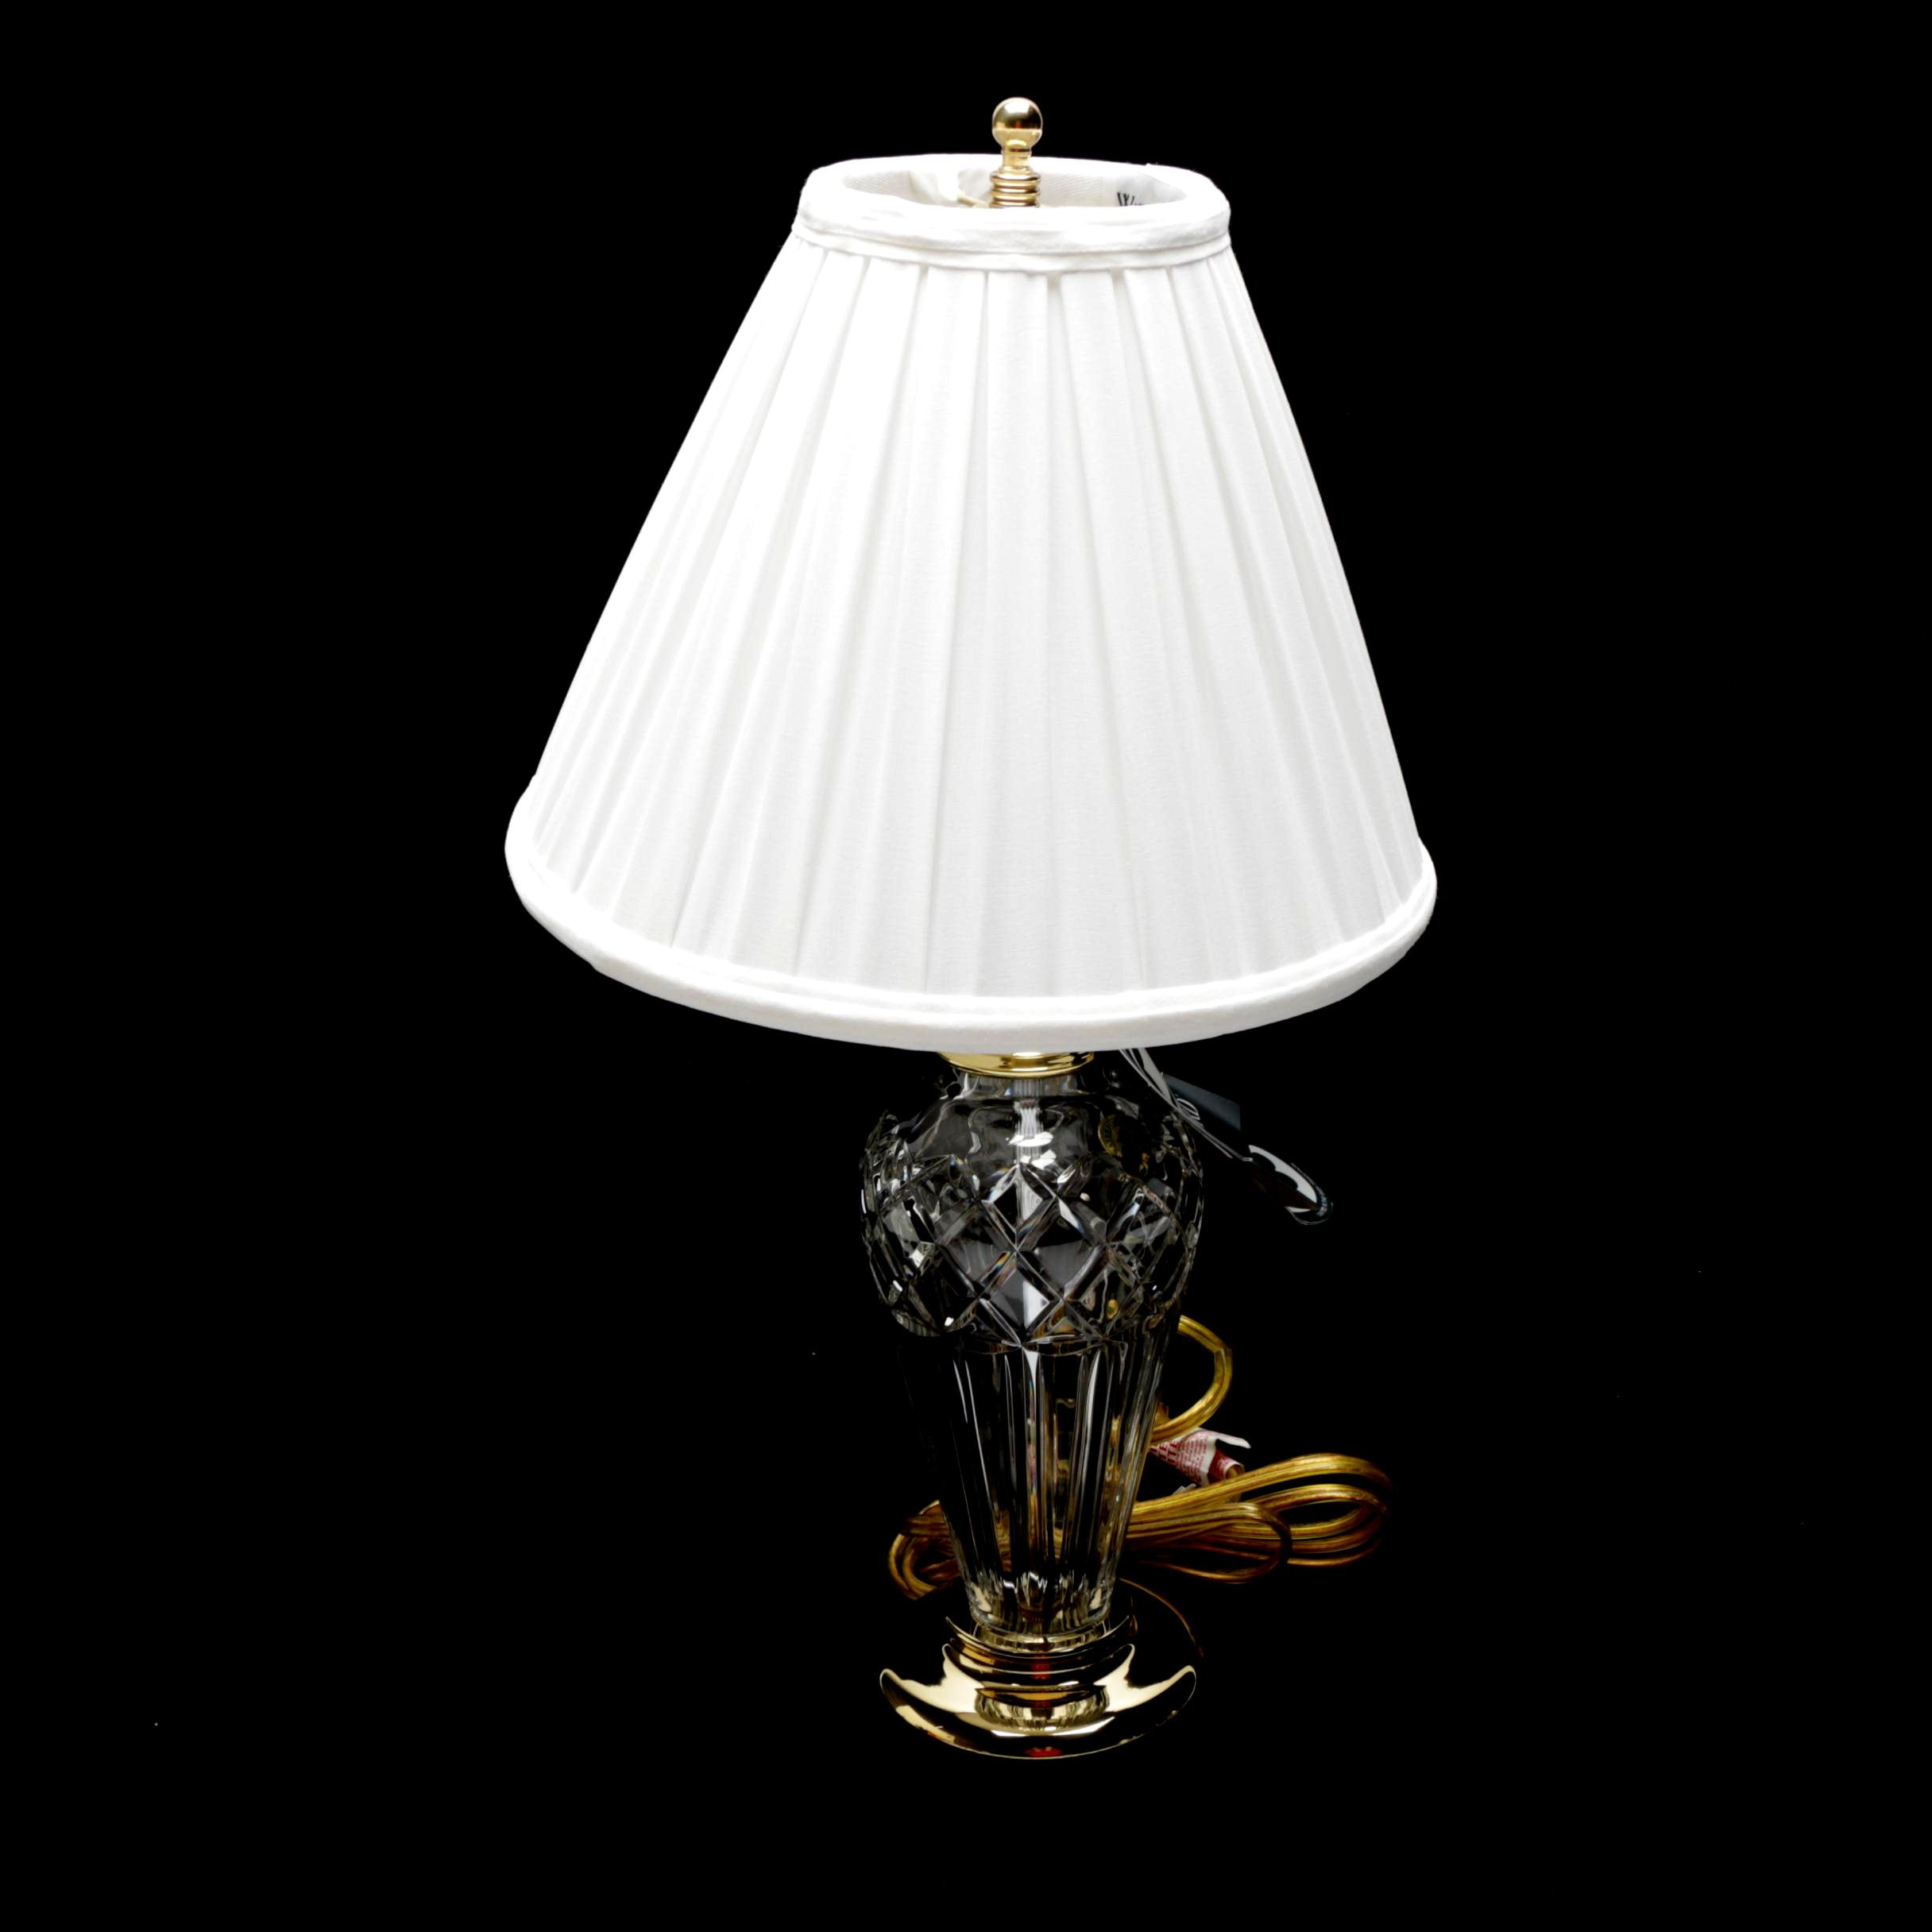 """Waterford Crystal """"Belline"""" Polished Brass and Crystal Lamp with White Shade"""